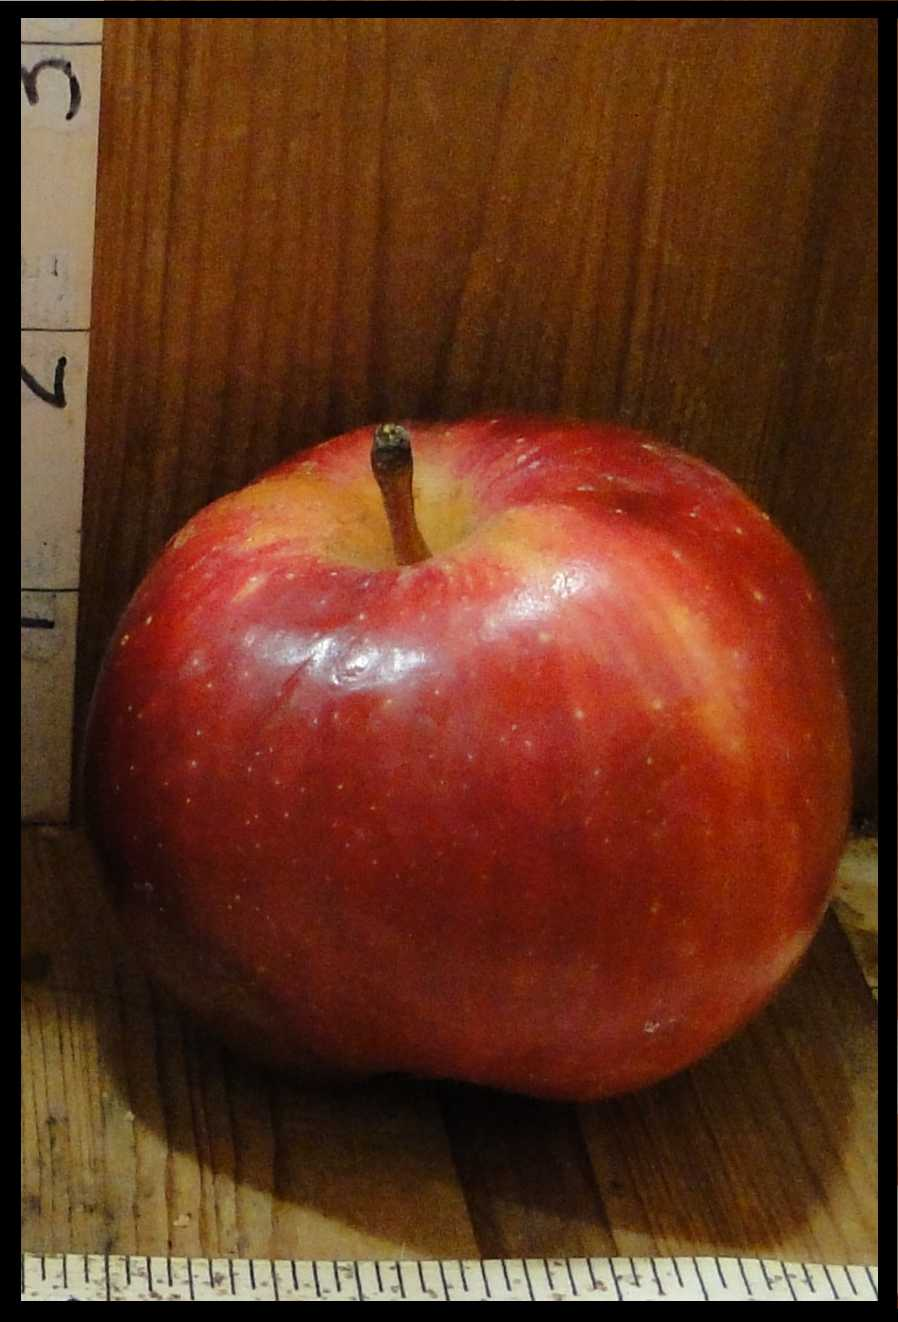 red apple with small white spots and patches of yellow